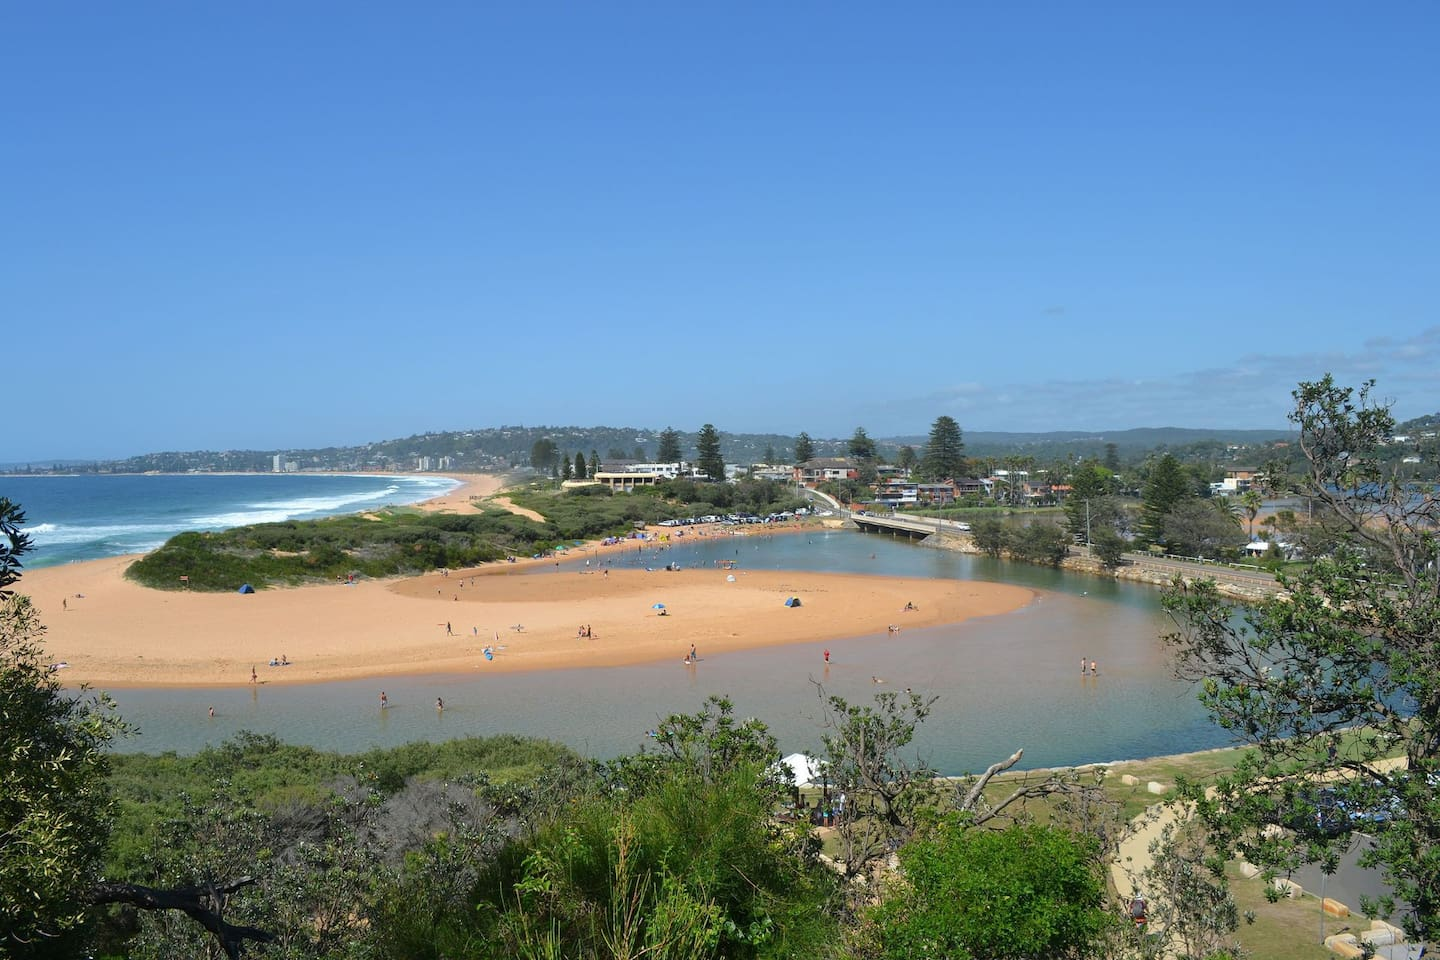 North Narrabeen beach and lake